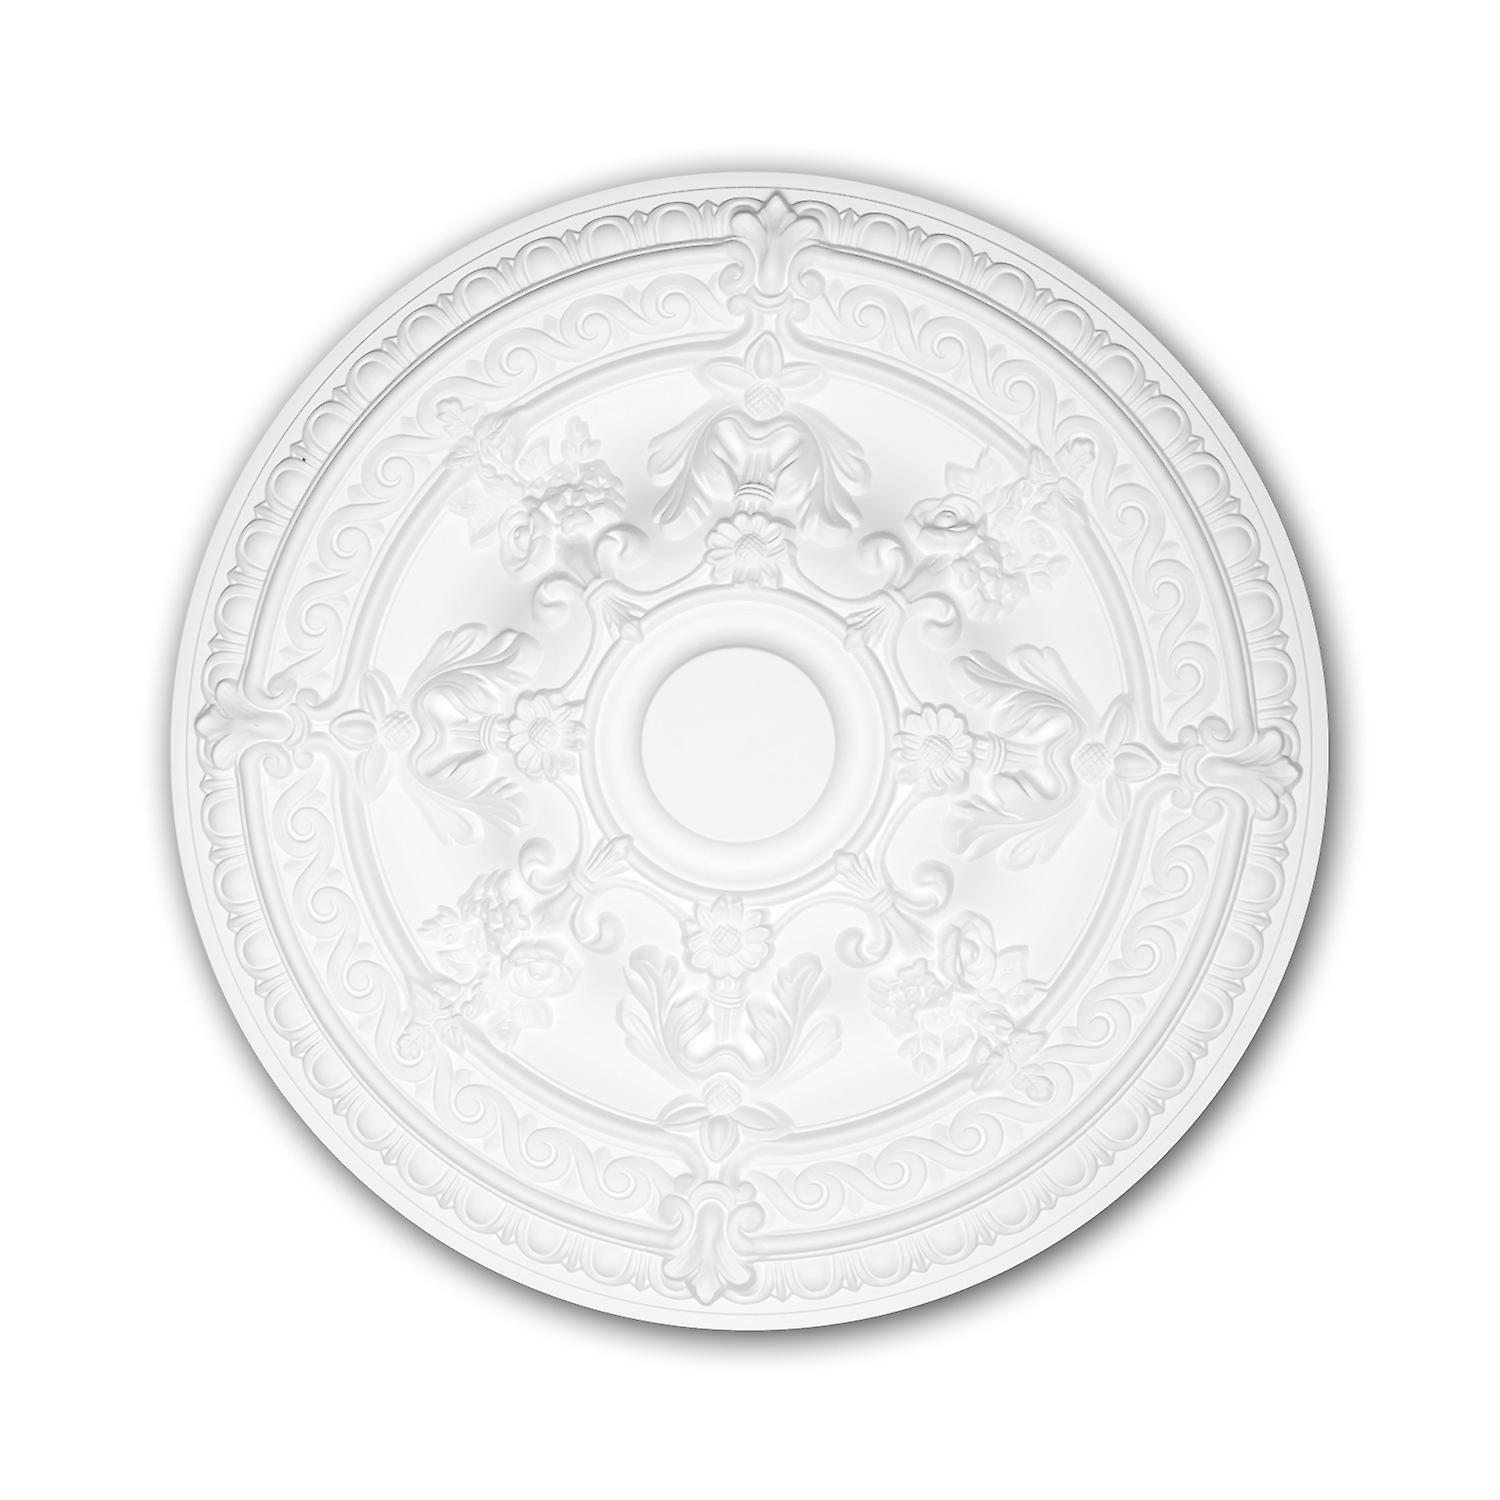 Ceiling rose Profhome 156039